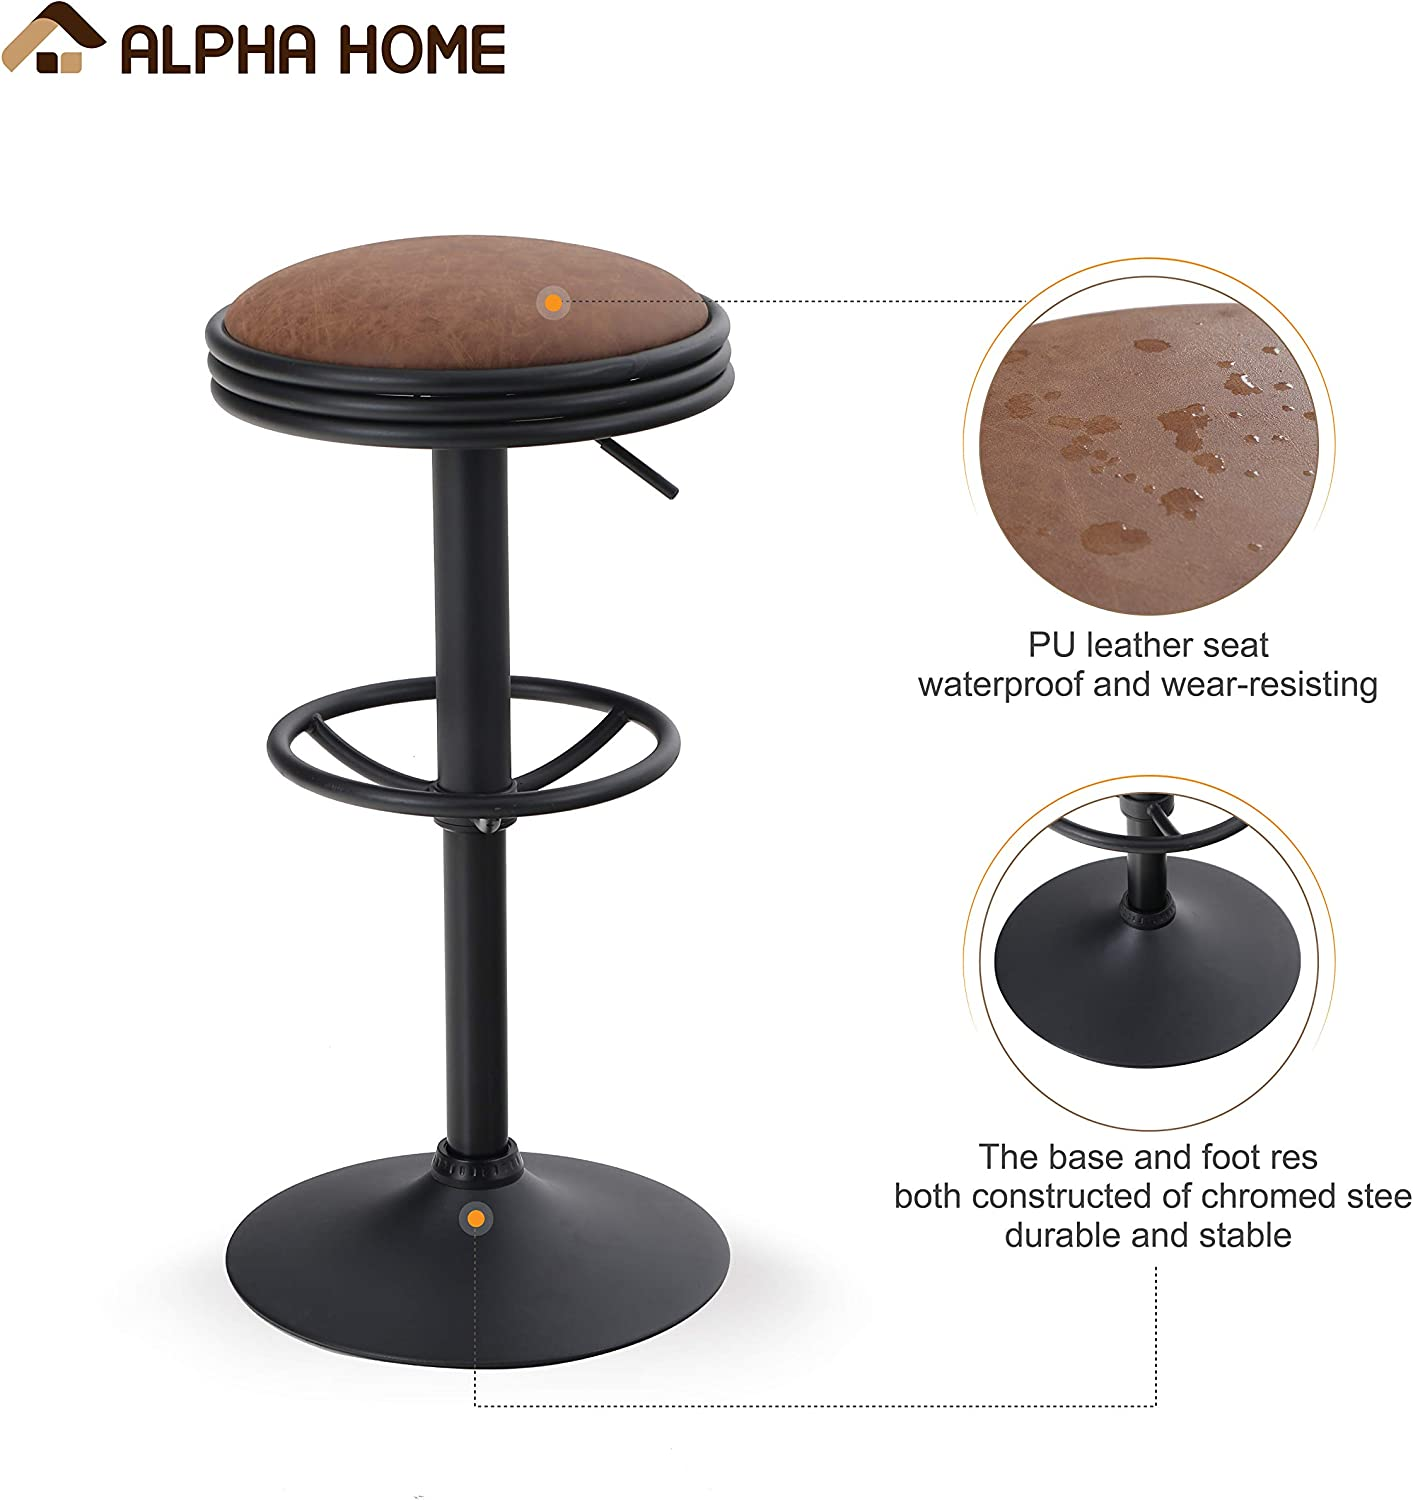 ALPHA HOME Swivel Bar Stool Counter Height Round PU Leather Adjustable Chair Office Stool Pub Stool with Chrome Footrest Khaki, 2 pc